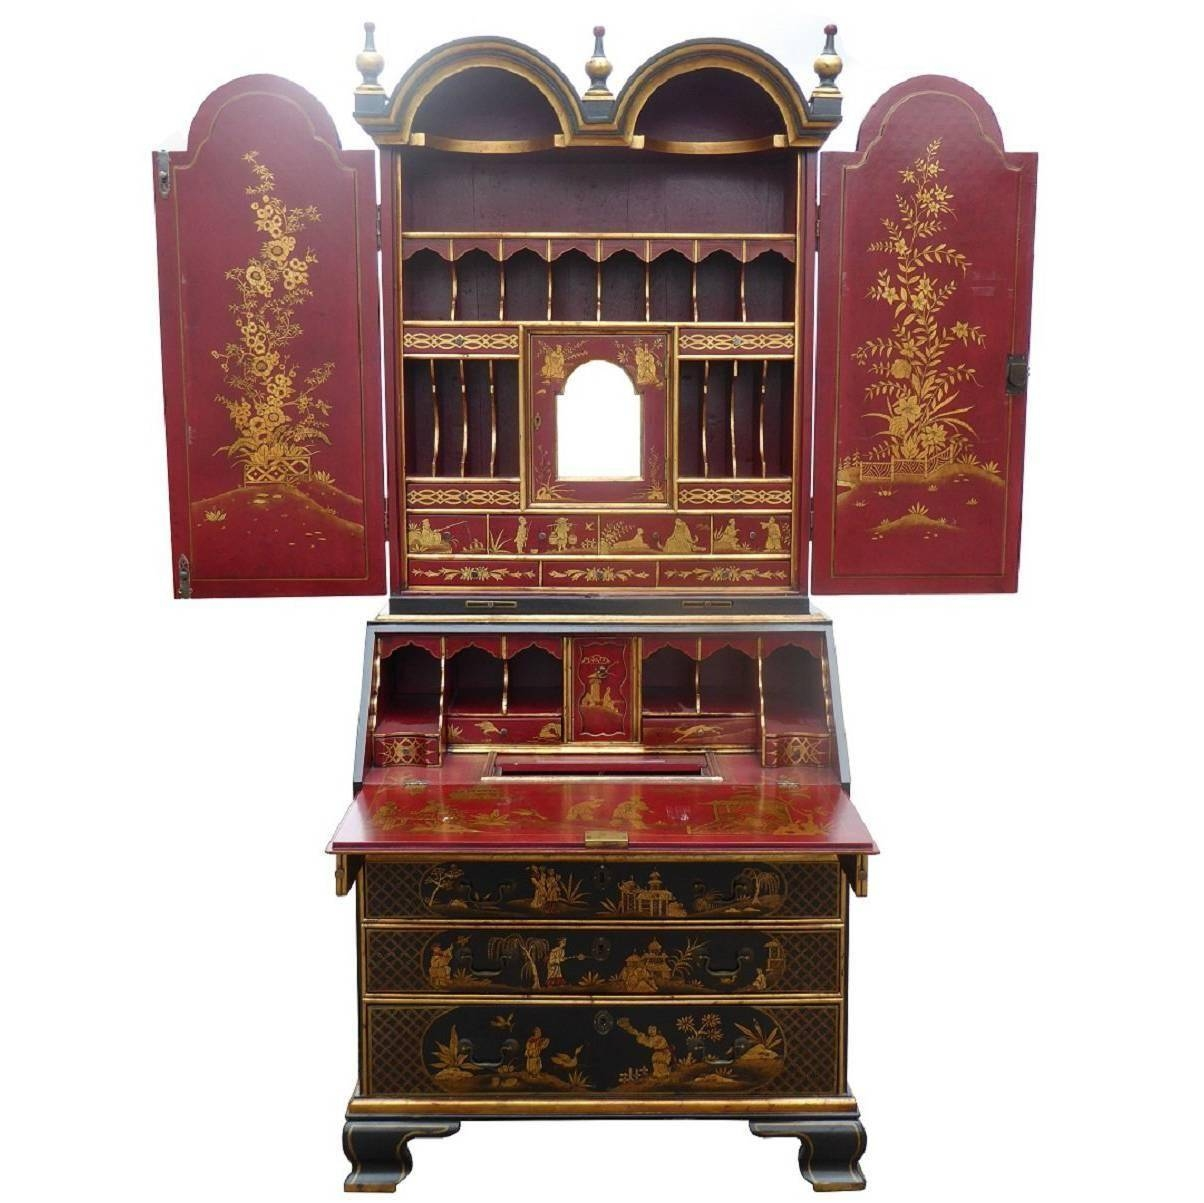 Chinoiserie Case Pieces And Storage Cabinets - 151 For Sale At 1Stdibs throughout Chinoiserie Sideboards (Image 13 of 30)